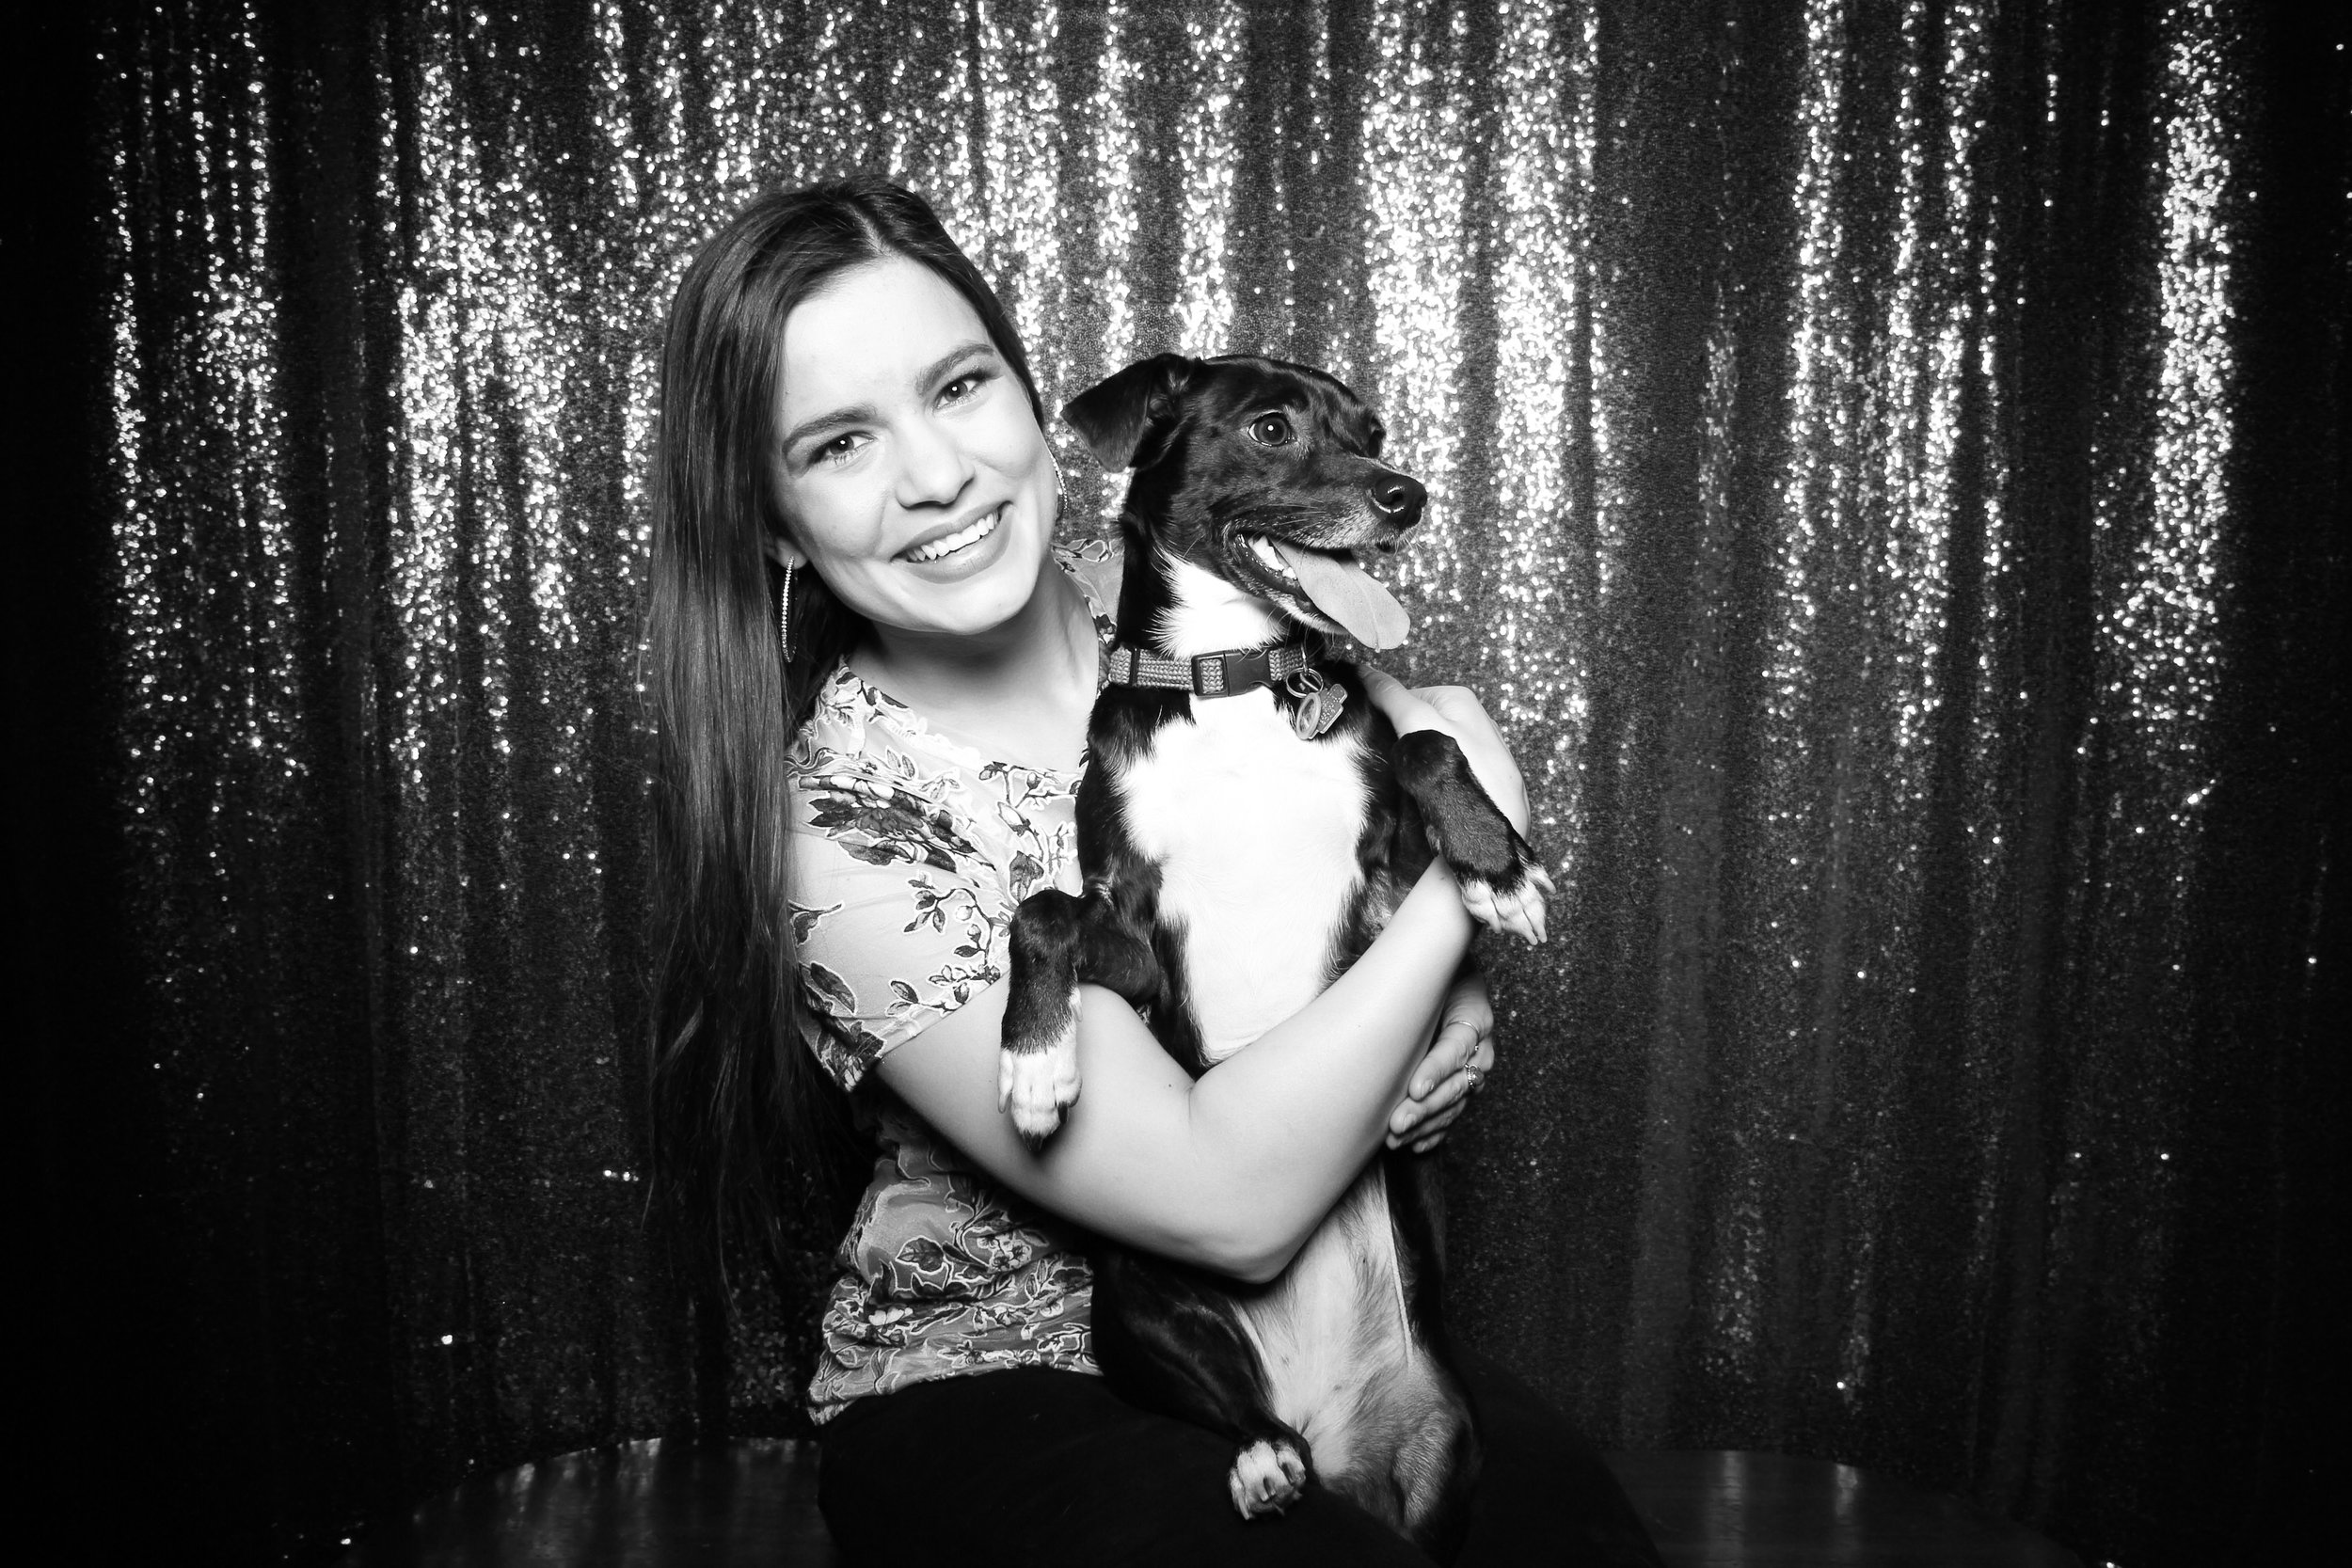 Chicago_Vintage_Photobooth_Valentines_Day_Dog_03.jpg